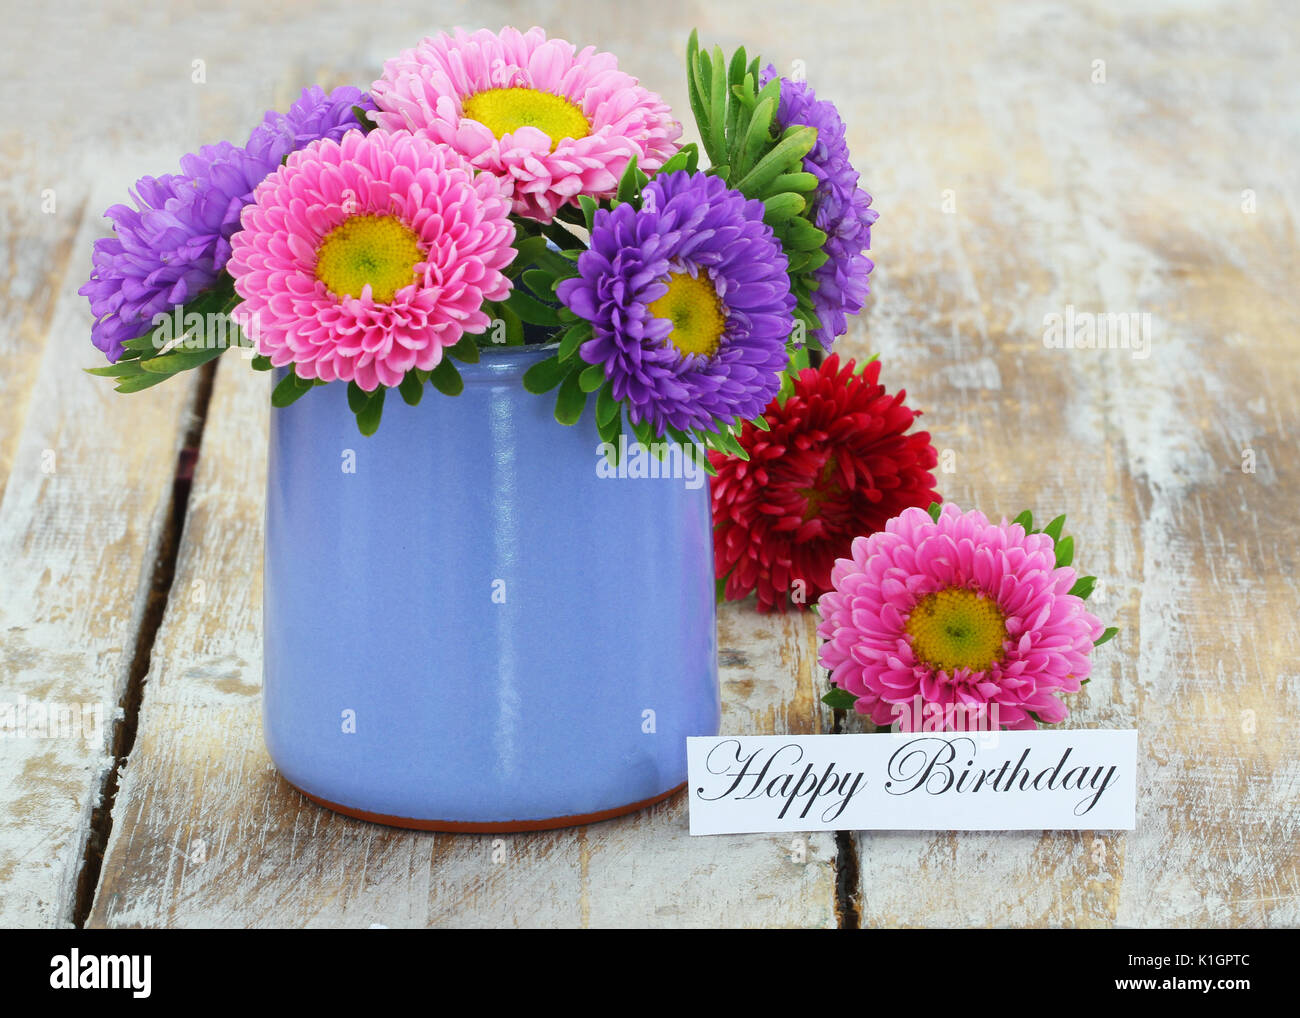 Happy birthday card with colorful daisy flowers in blue pot on happy birthday card with colorful daisy flowers in blue pot on rustic wooden surface izmirmasajfo